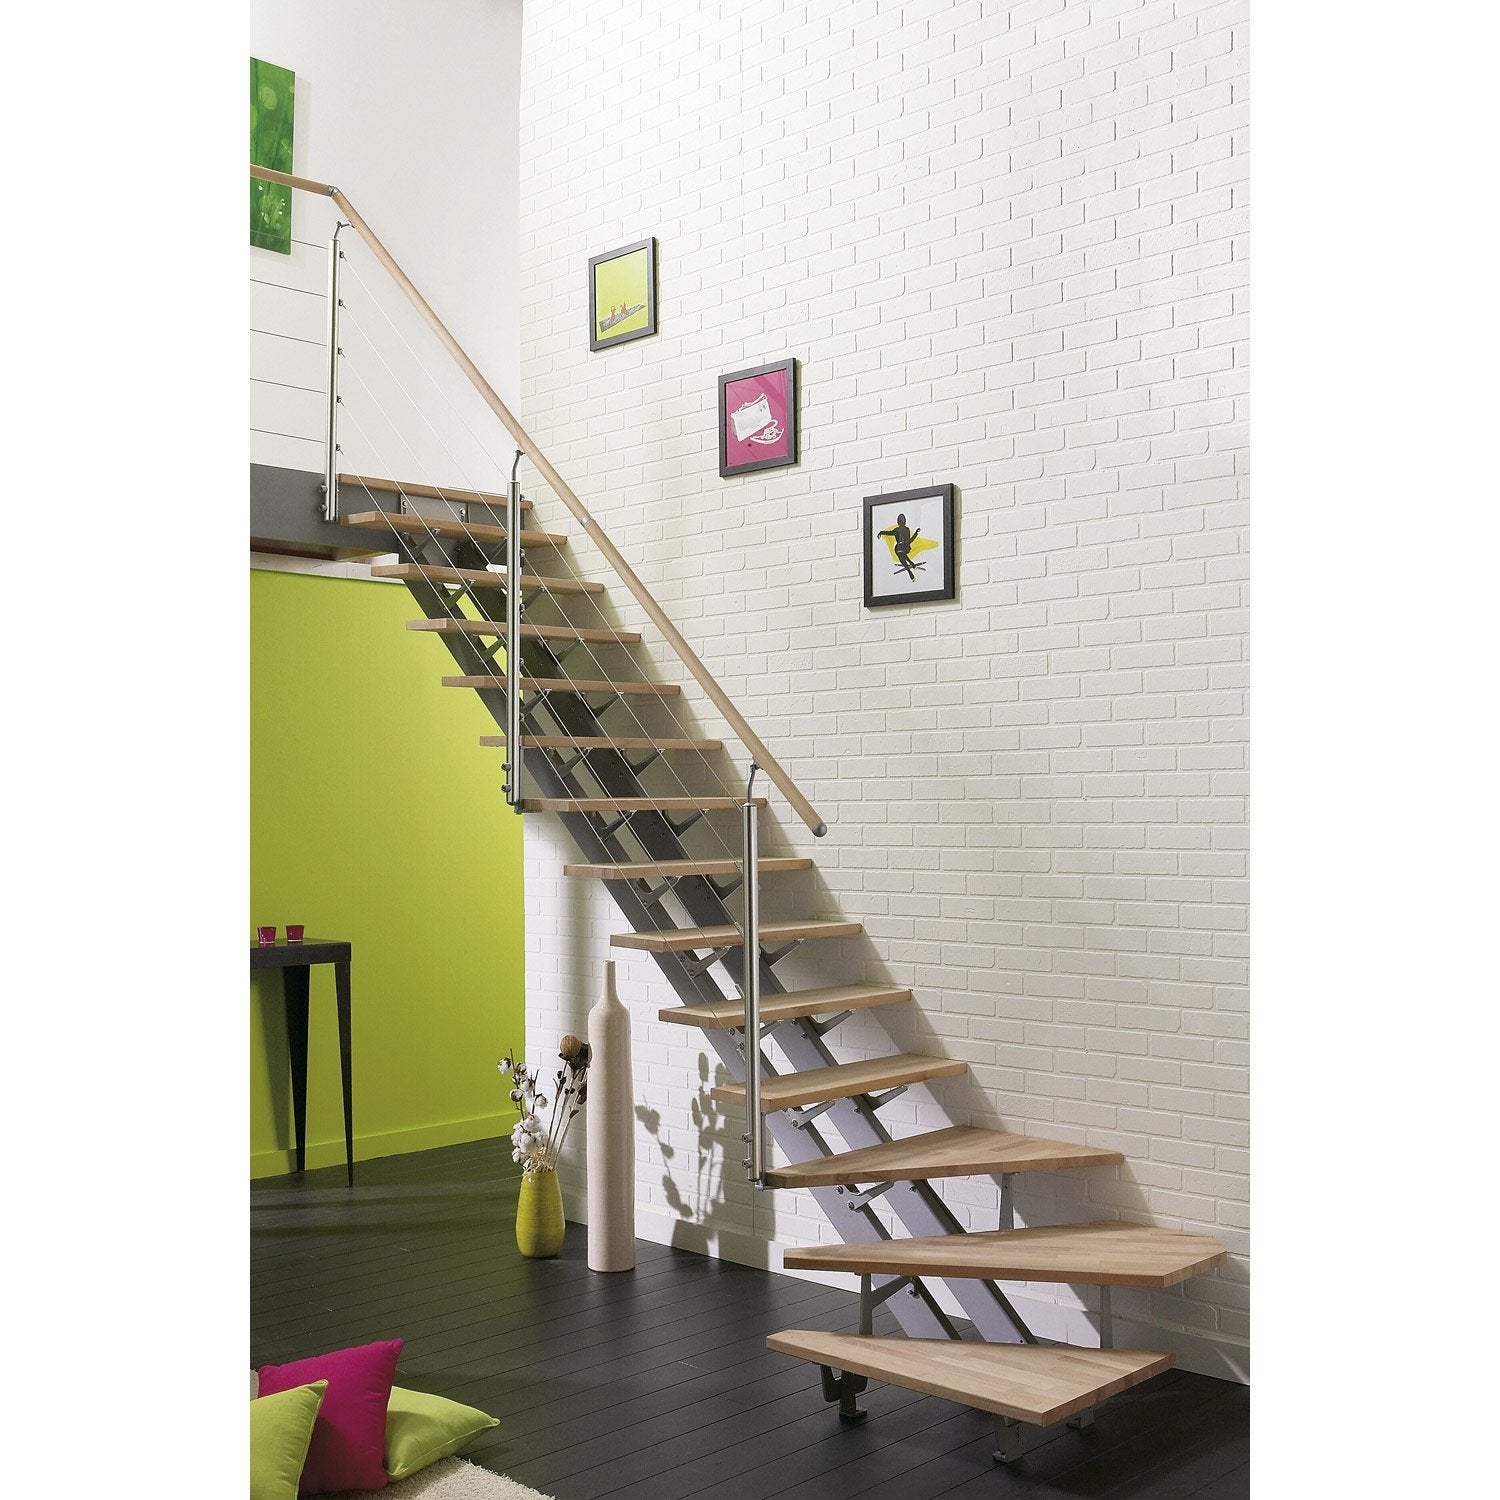 Escalier quart tournant escatwin structure aluminium for Pose carrelage escalier tournant